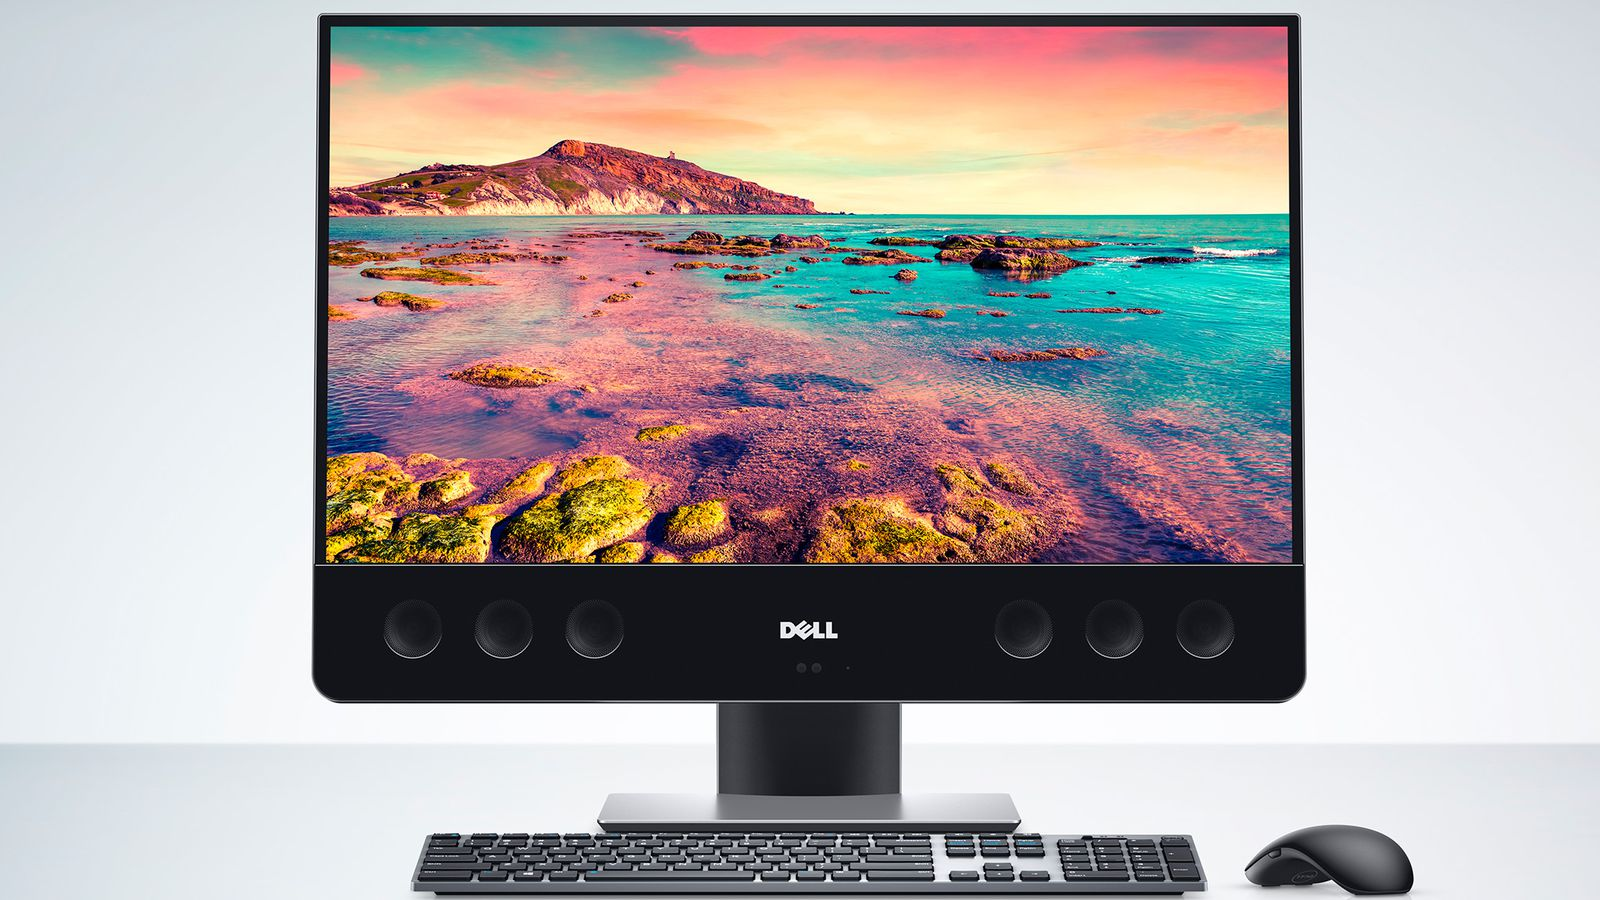 Dell put 10 speakers inside new XPS 27 all-in-one PC